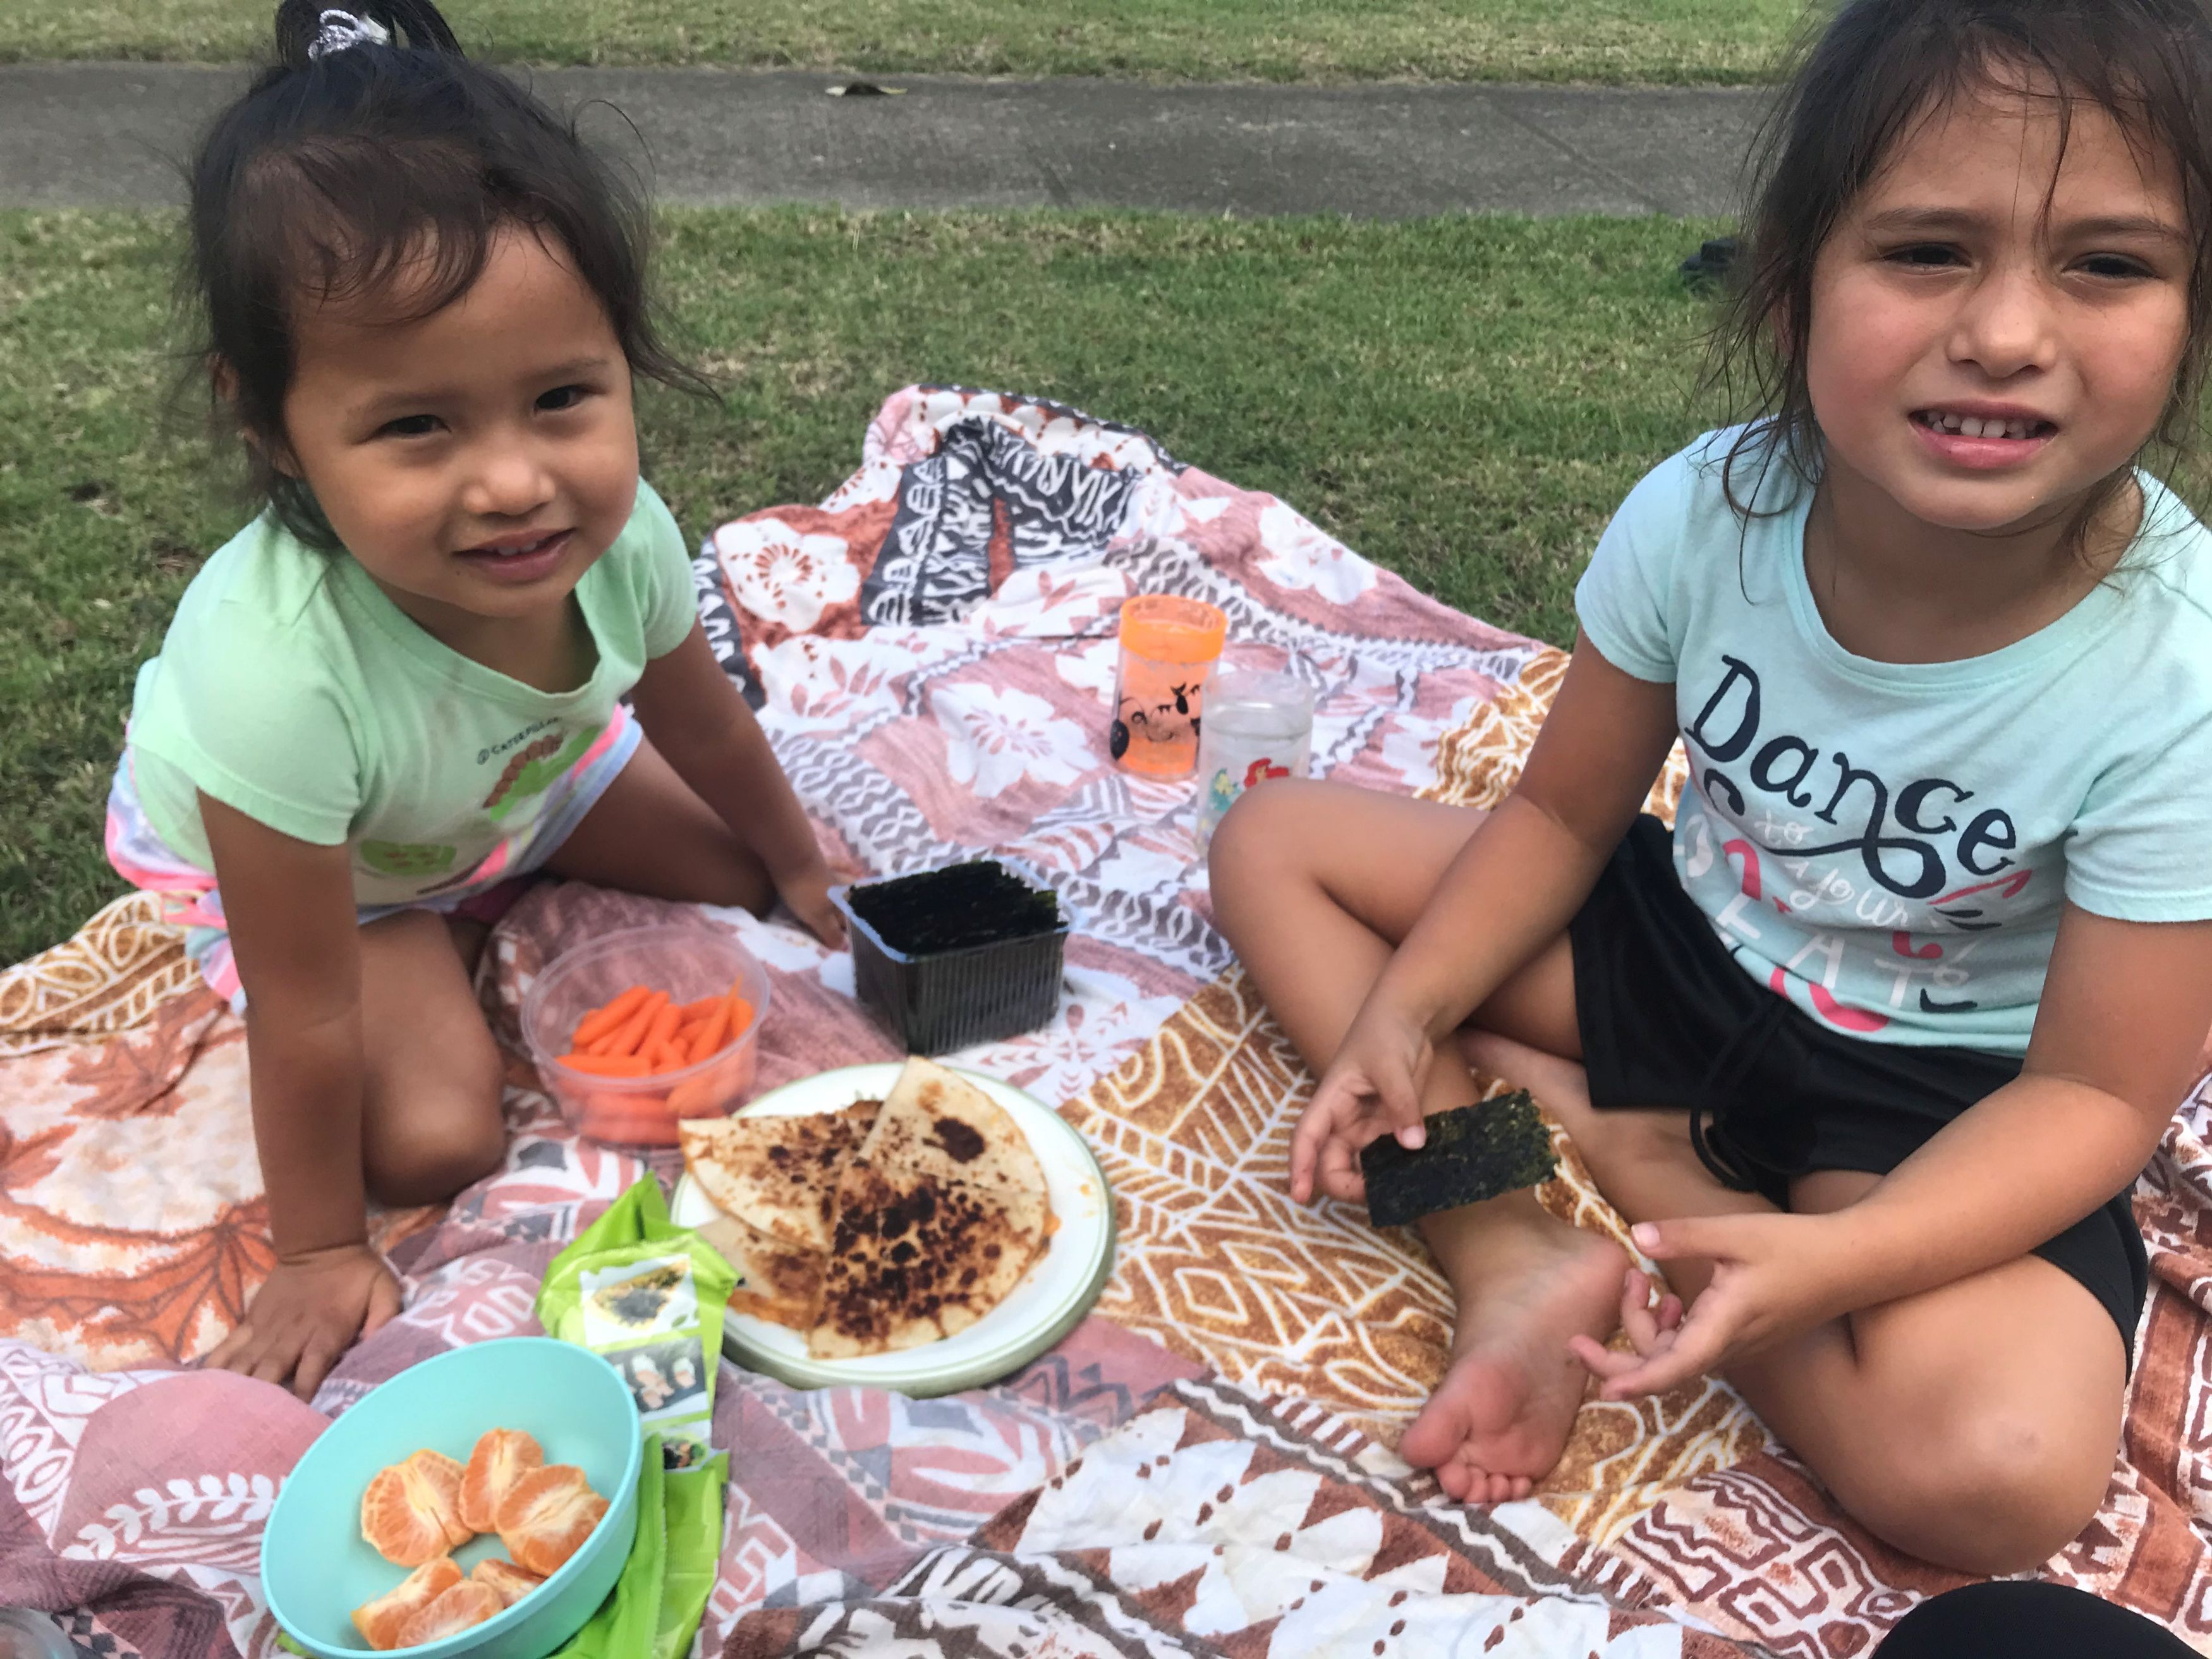 My girls having a picnic in the yard